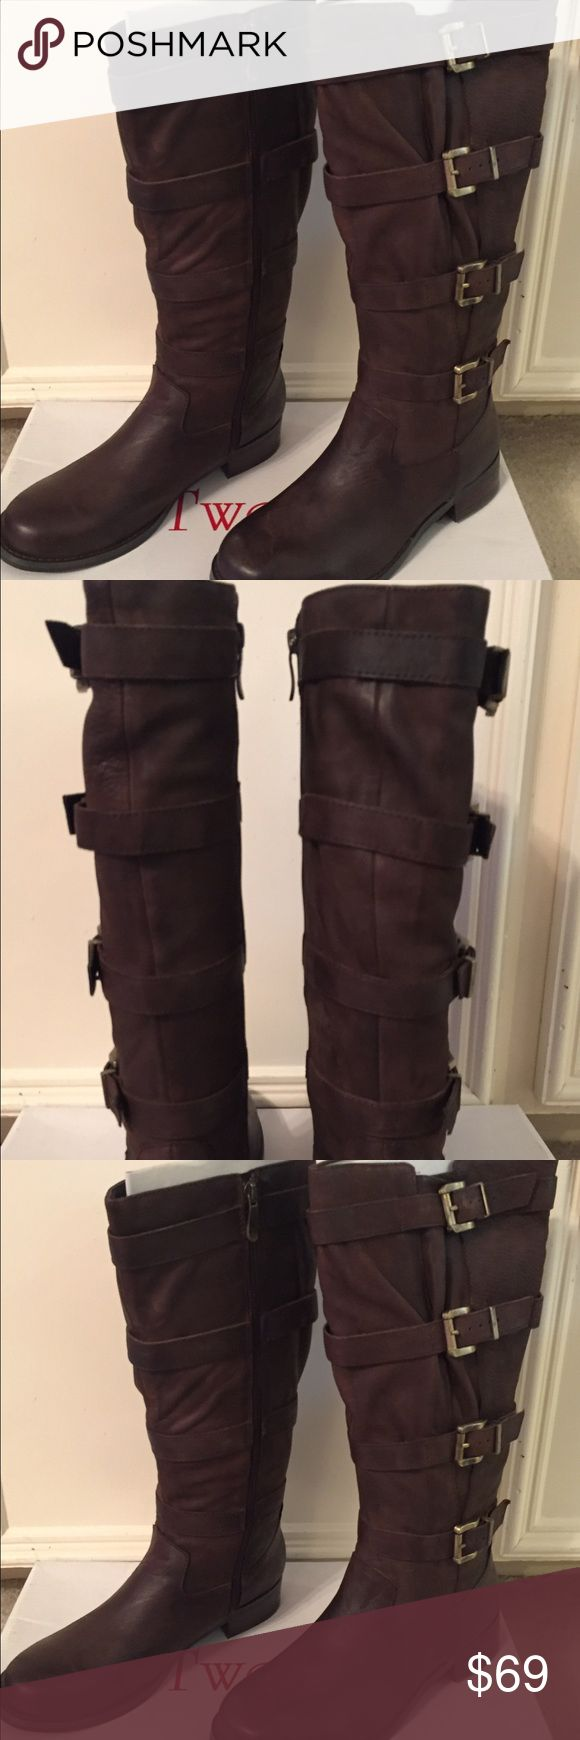 Women's brown boots size 9 NIB New women's dark brown boots size 9, upper leather. Small heel. Shoes Heeled Boots